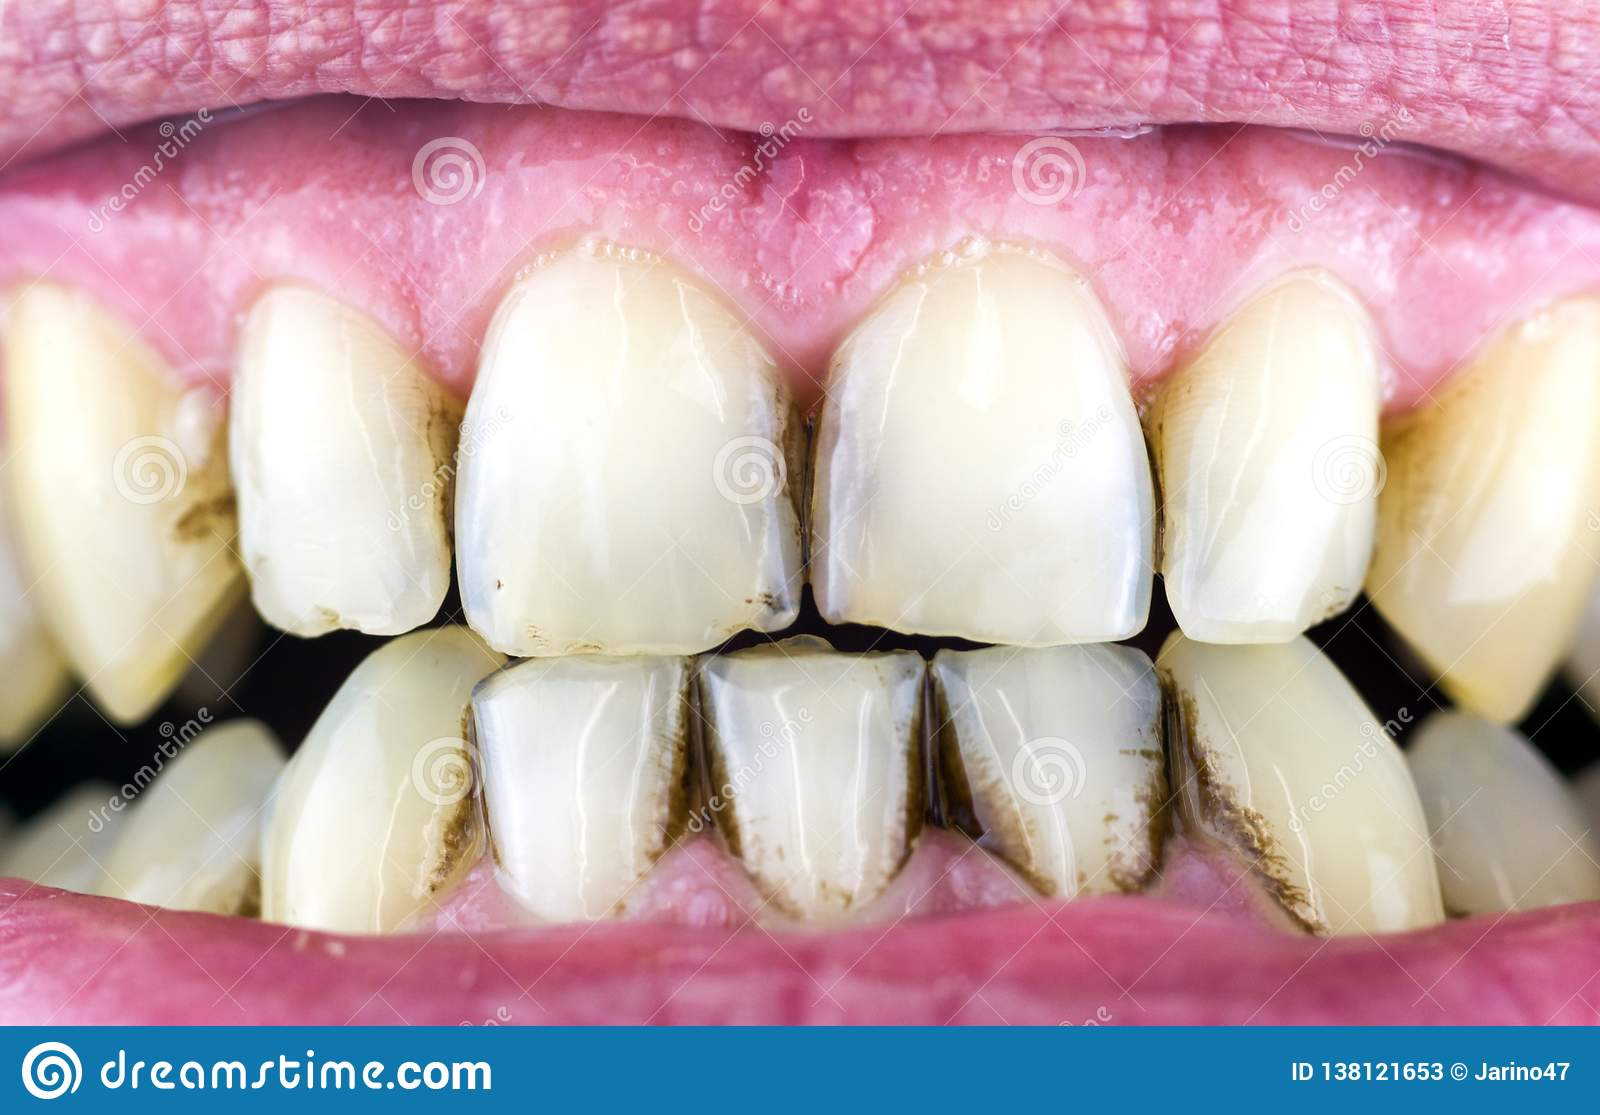 Dental plaque on teeth stock image  Image of treatment